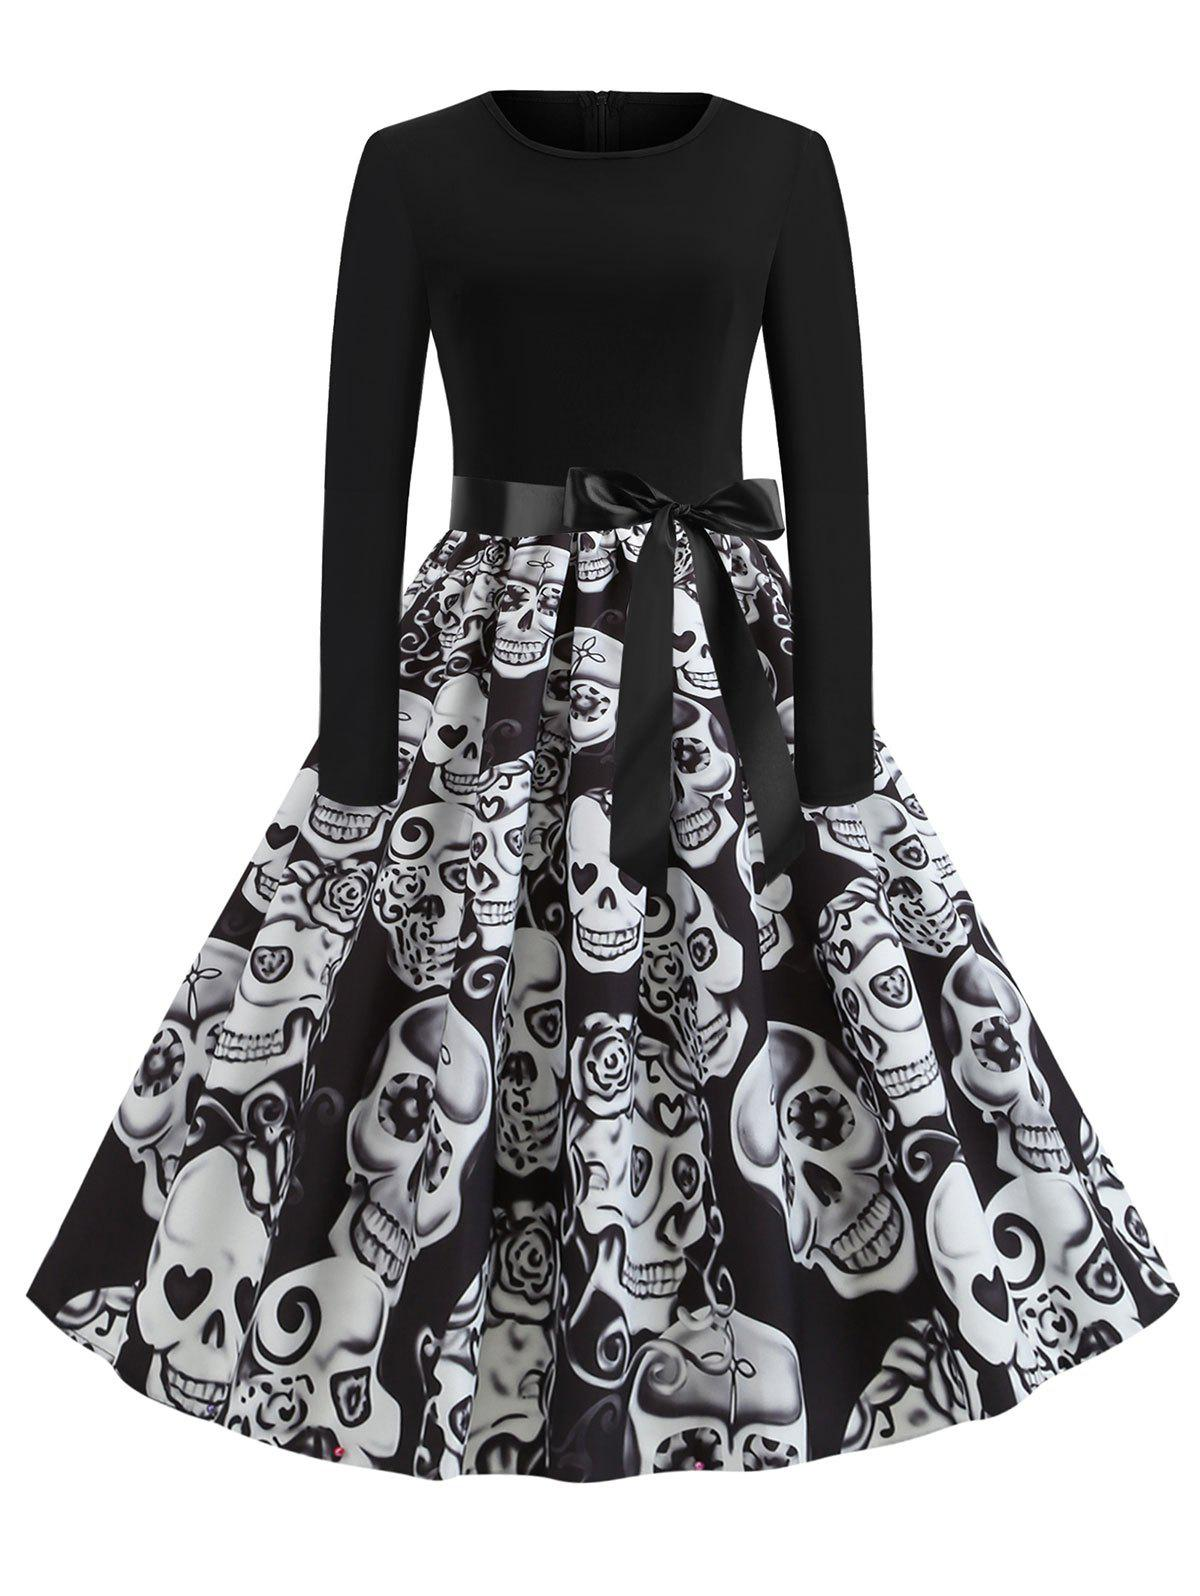 Unique Plus Size Halloween Skull Print Vintage Swing 1950s Dress